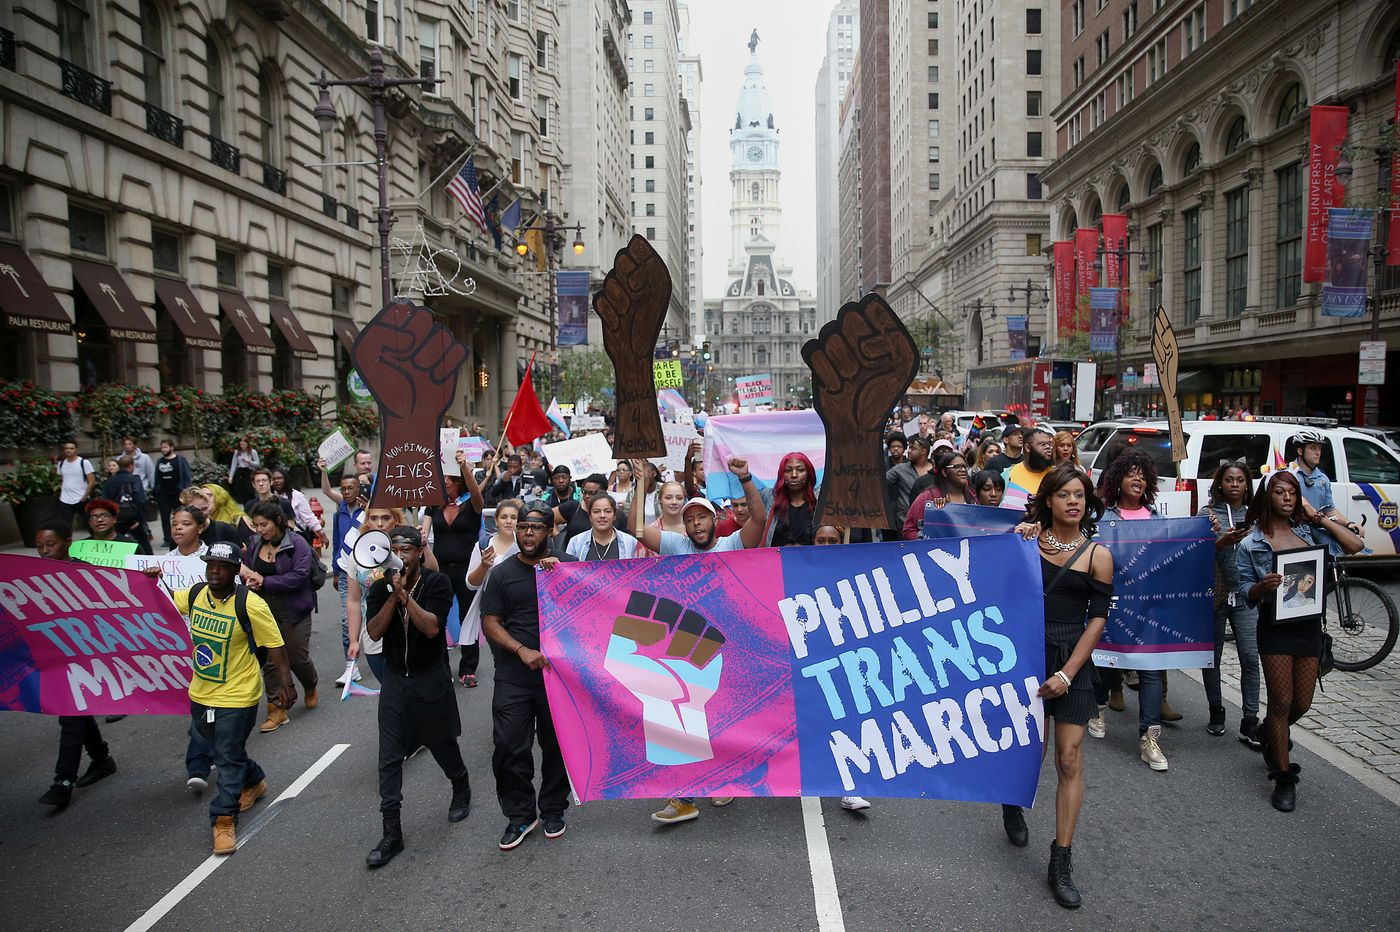 Philly passes trans youth bill; DA Larry Krasner launches impact website | Morning Newsletter